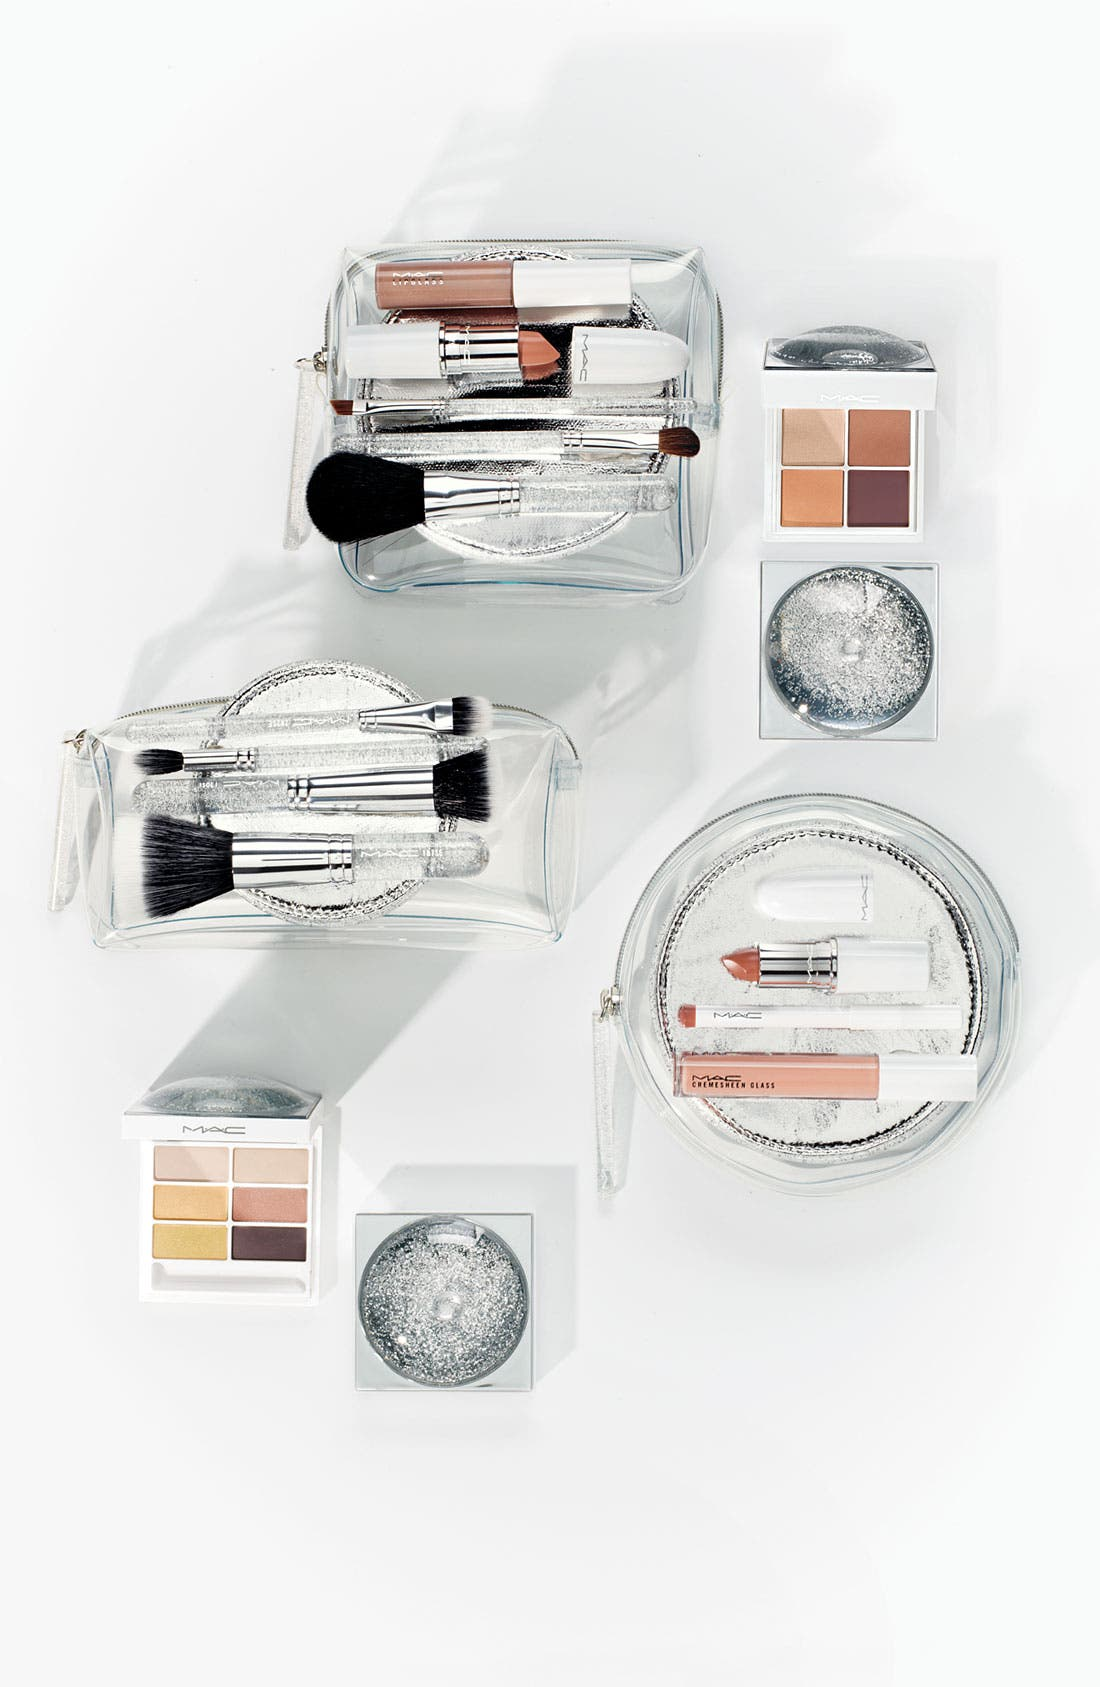 M·A·C 'Iced Delights - Sultry' Lip Bag,                             Main thumbnail 1, color,                             000